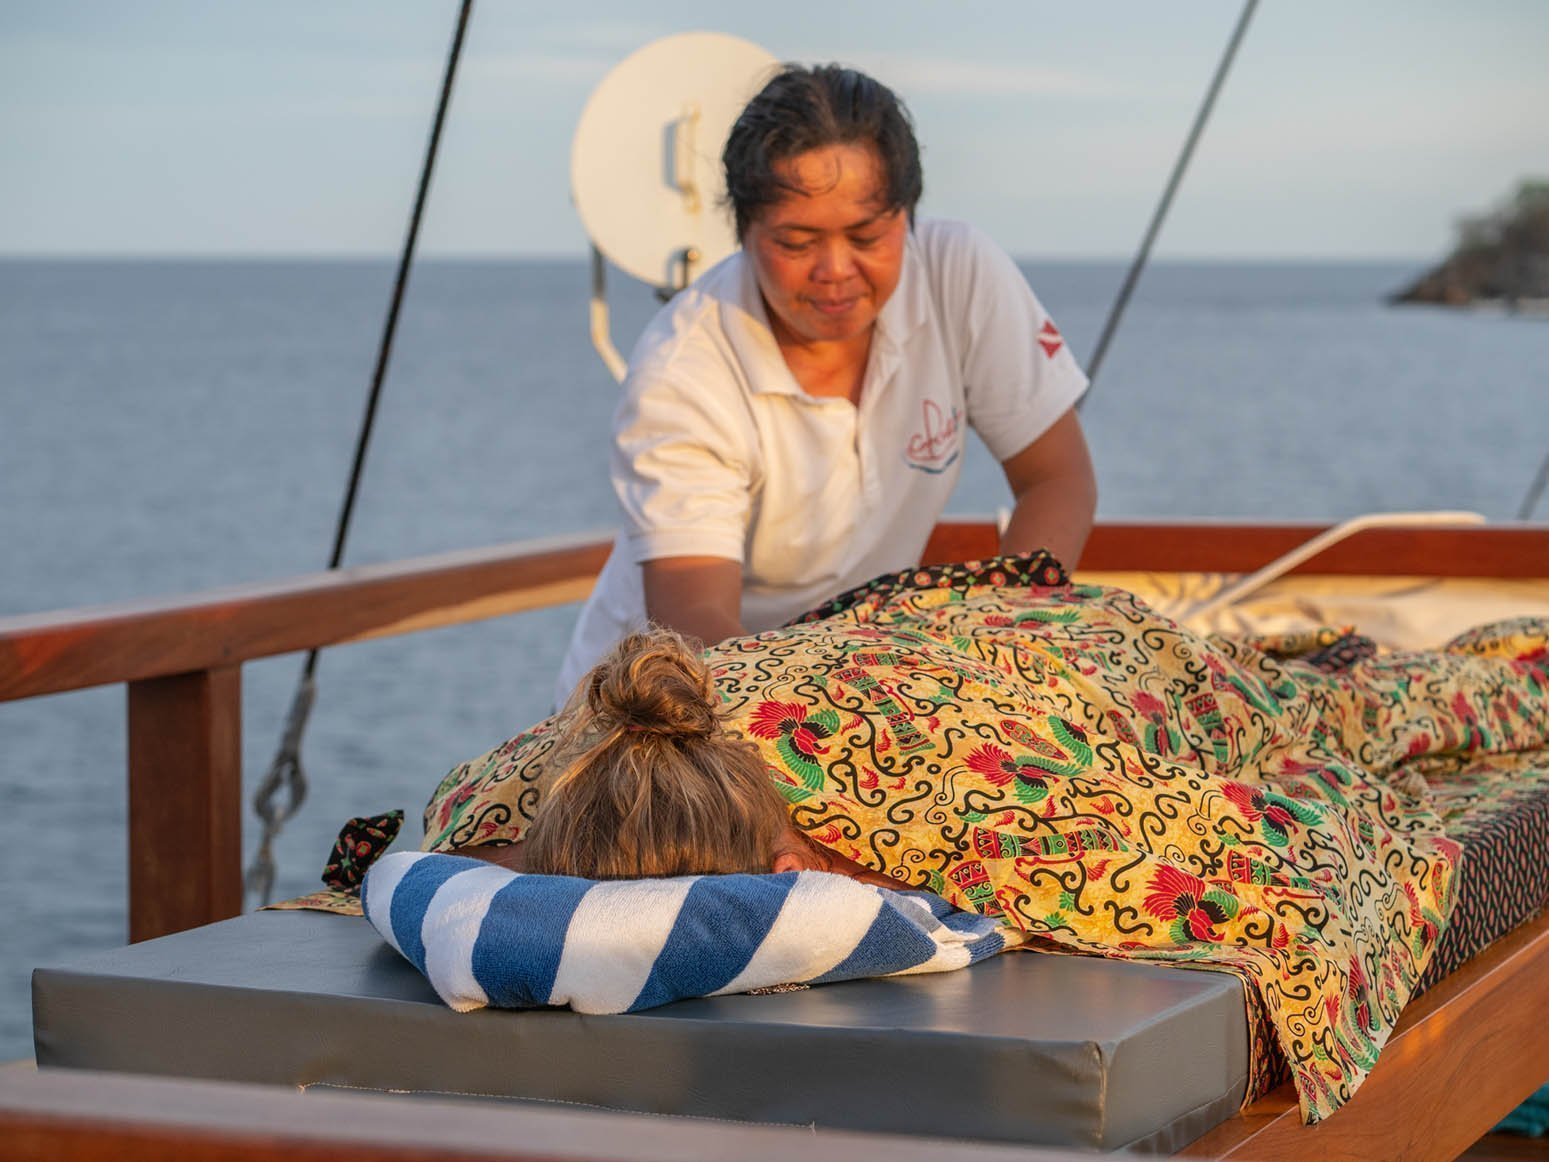 guest recieving massage from liveaboard staff